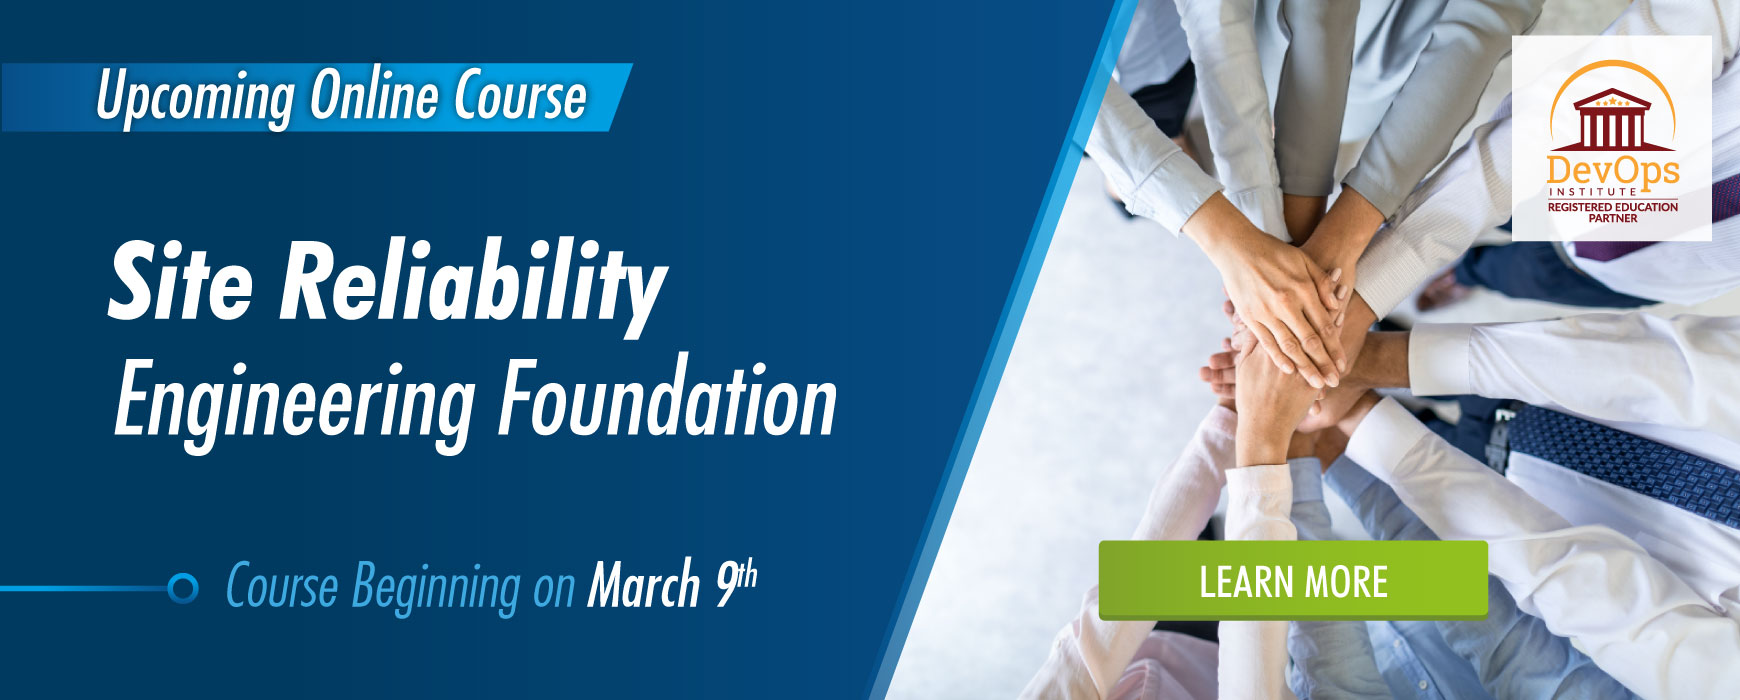 Site Reliability Engineering Foundation Certification Course Begins 3/9